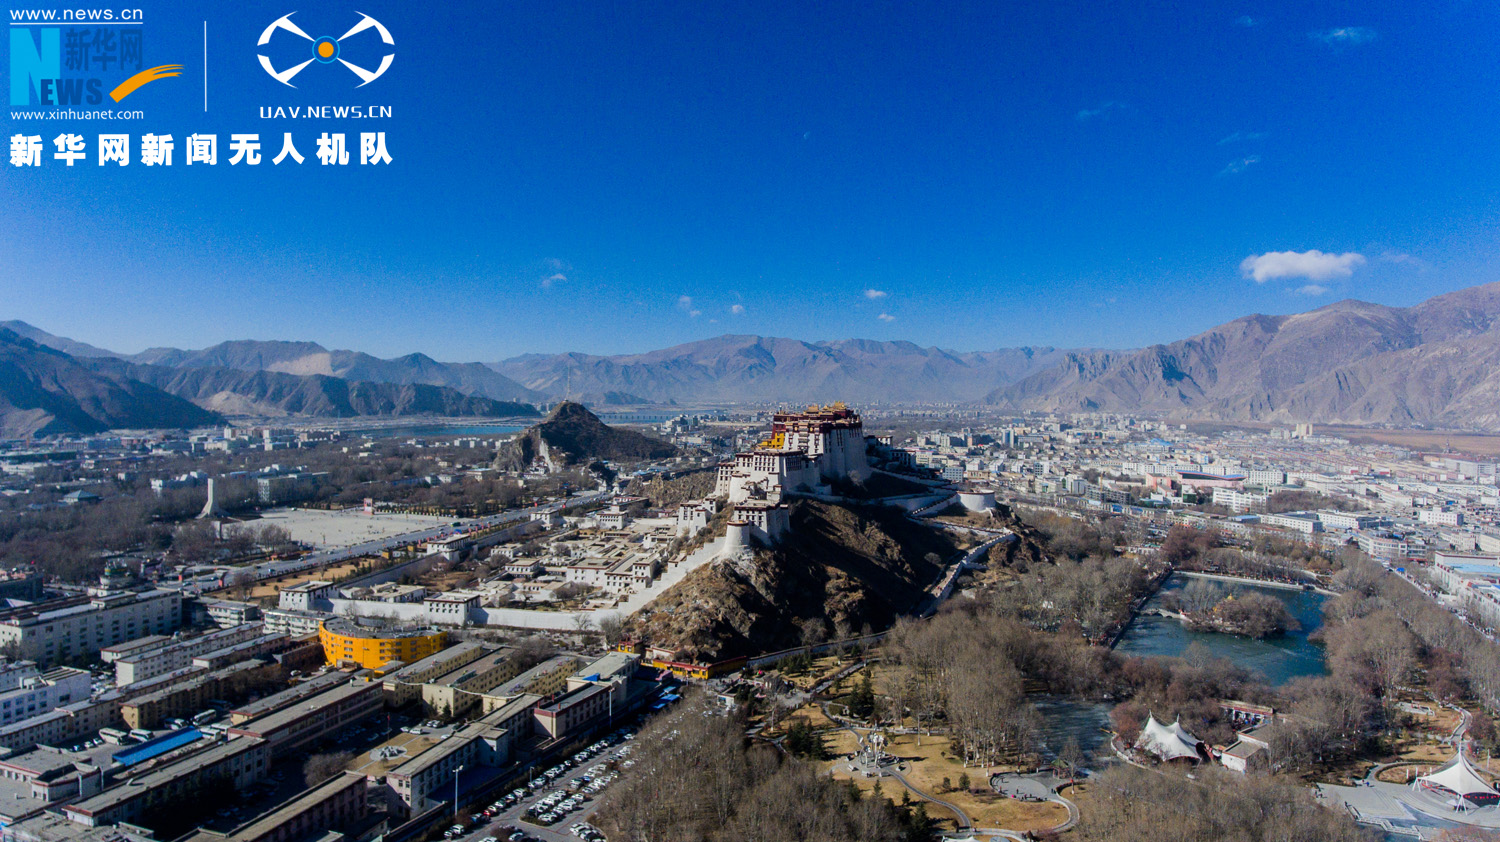 Bird's-eye views are coming to Tibet